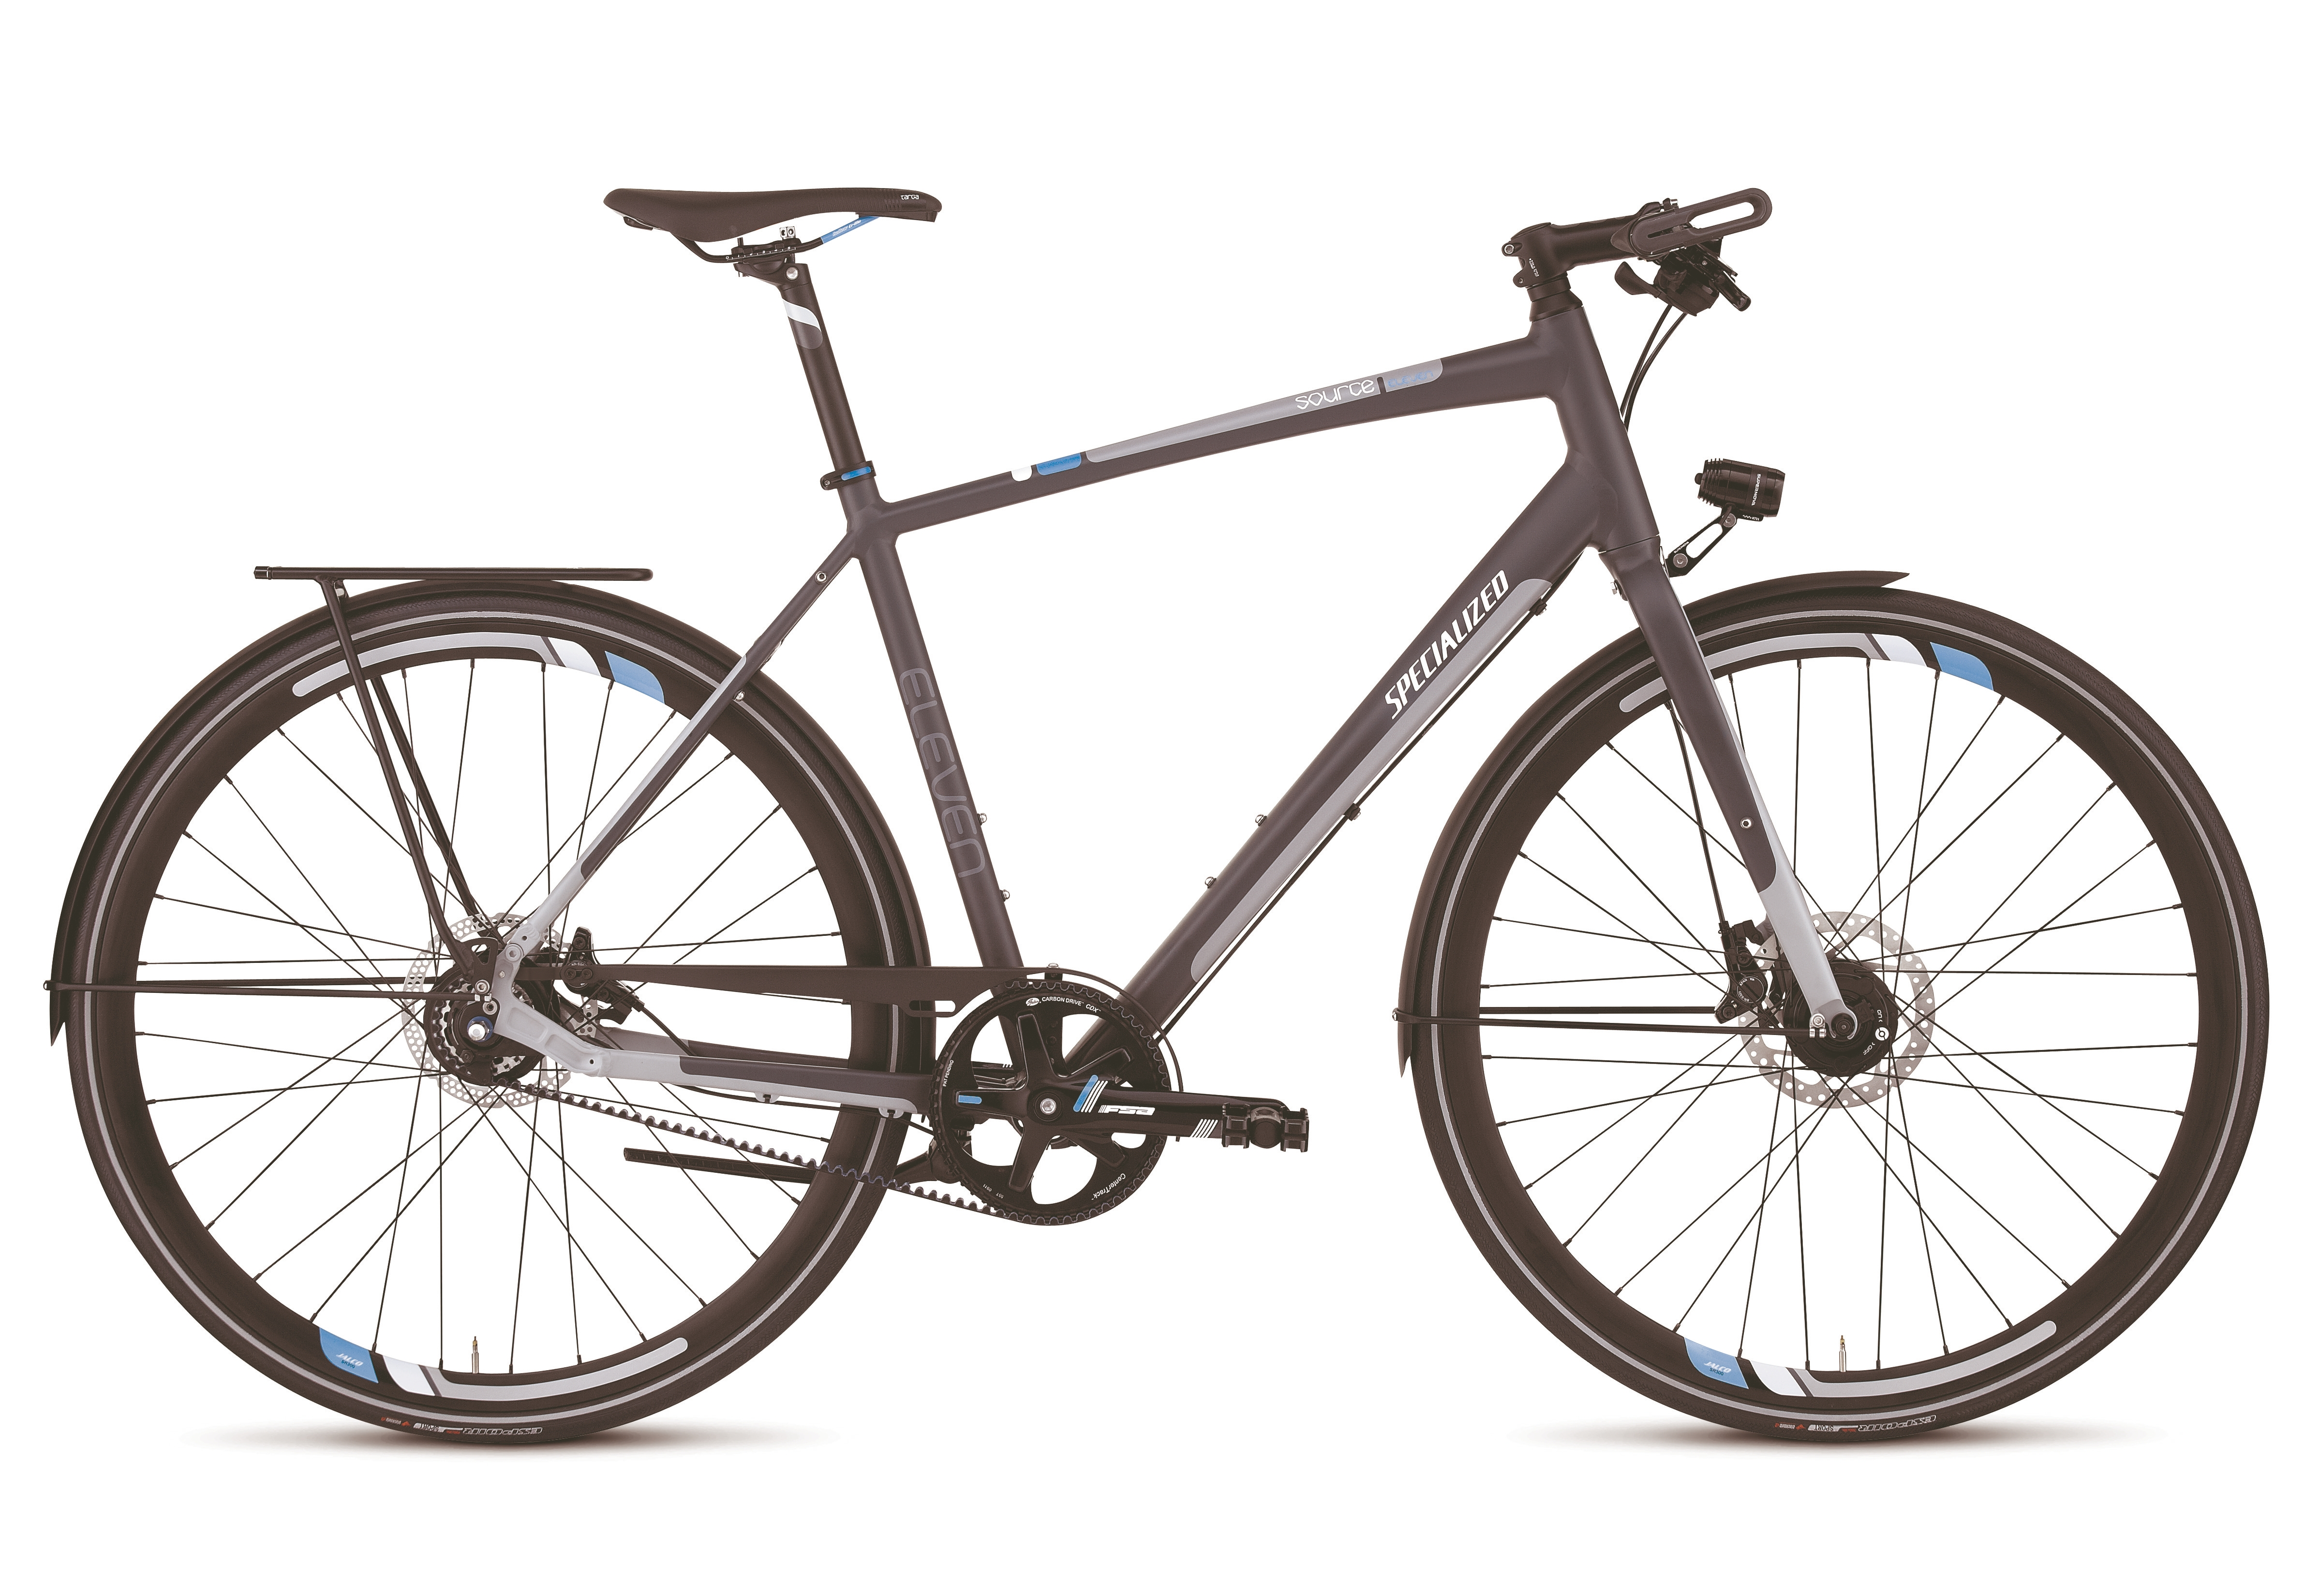 The Source 11 urban commuter bike with Gates CenterTrack drive will be featured at the Eurobike 2011 tradeshow.